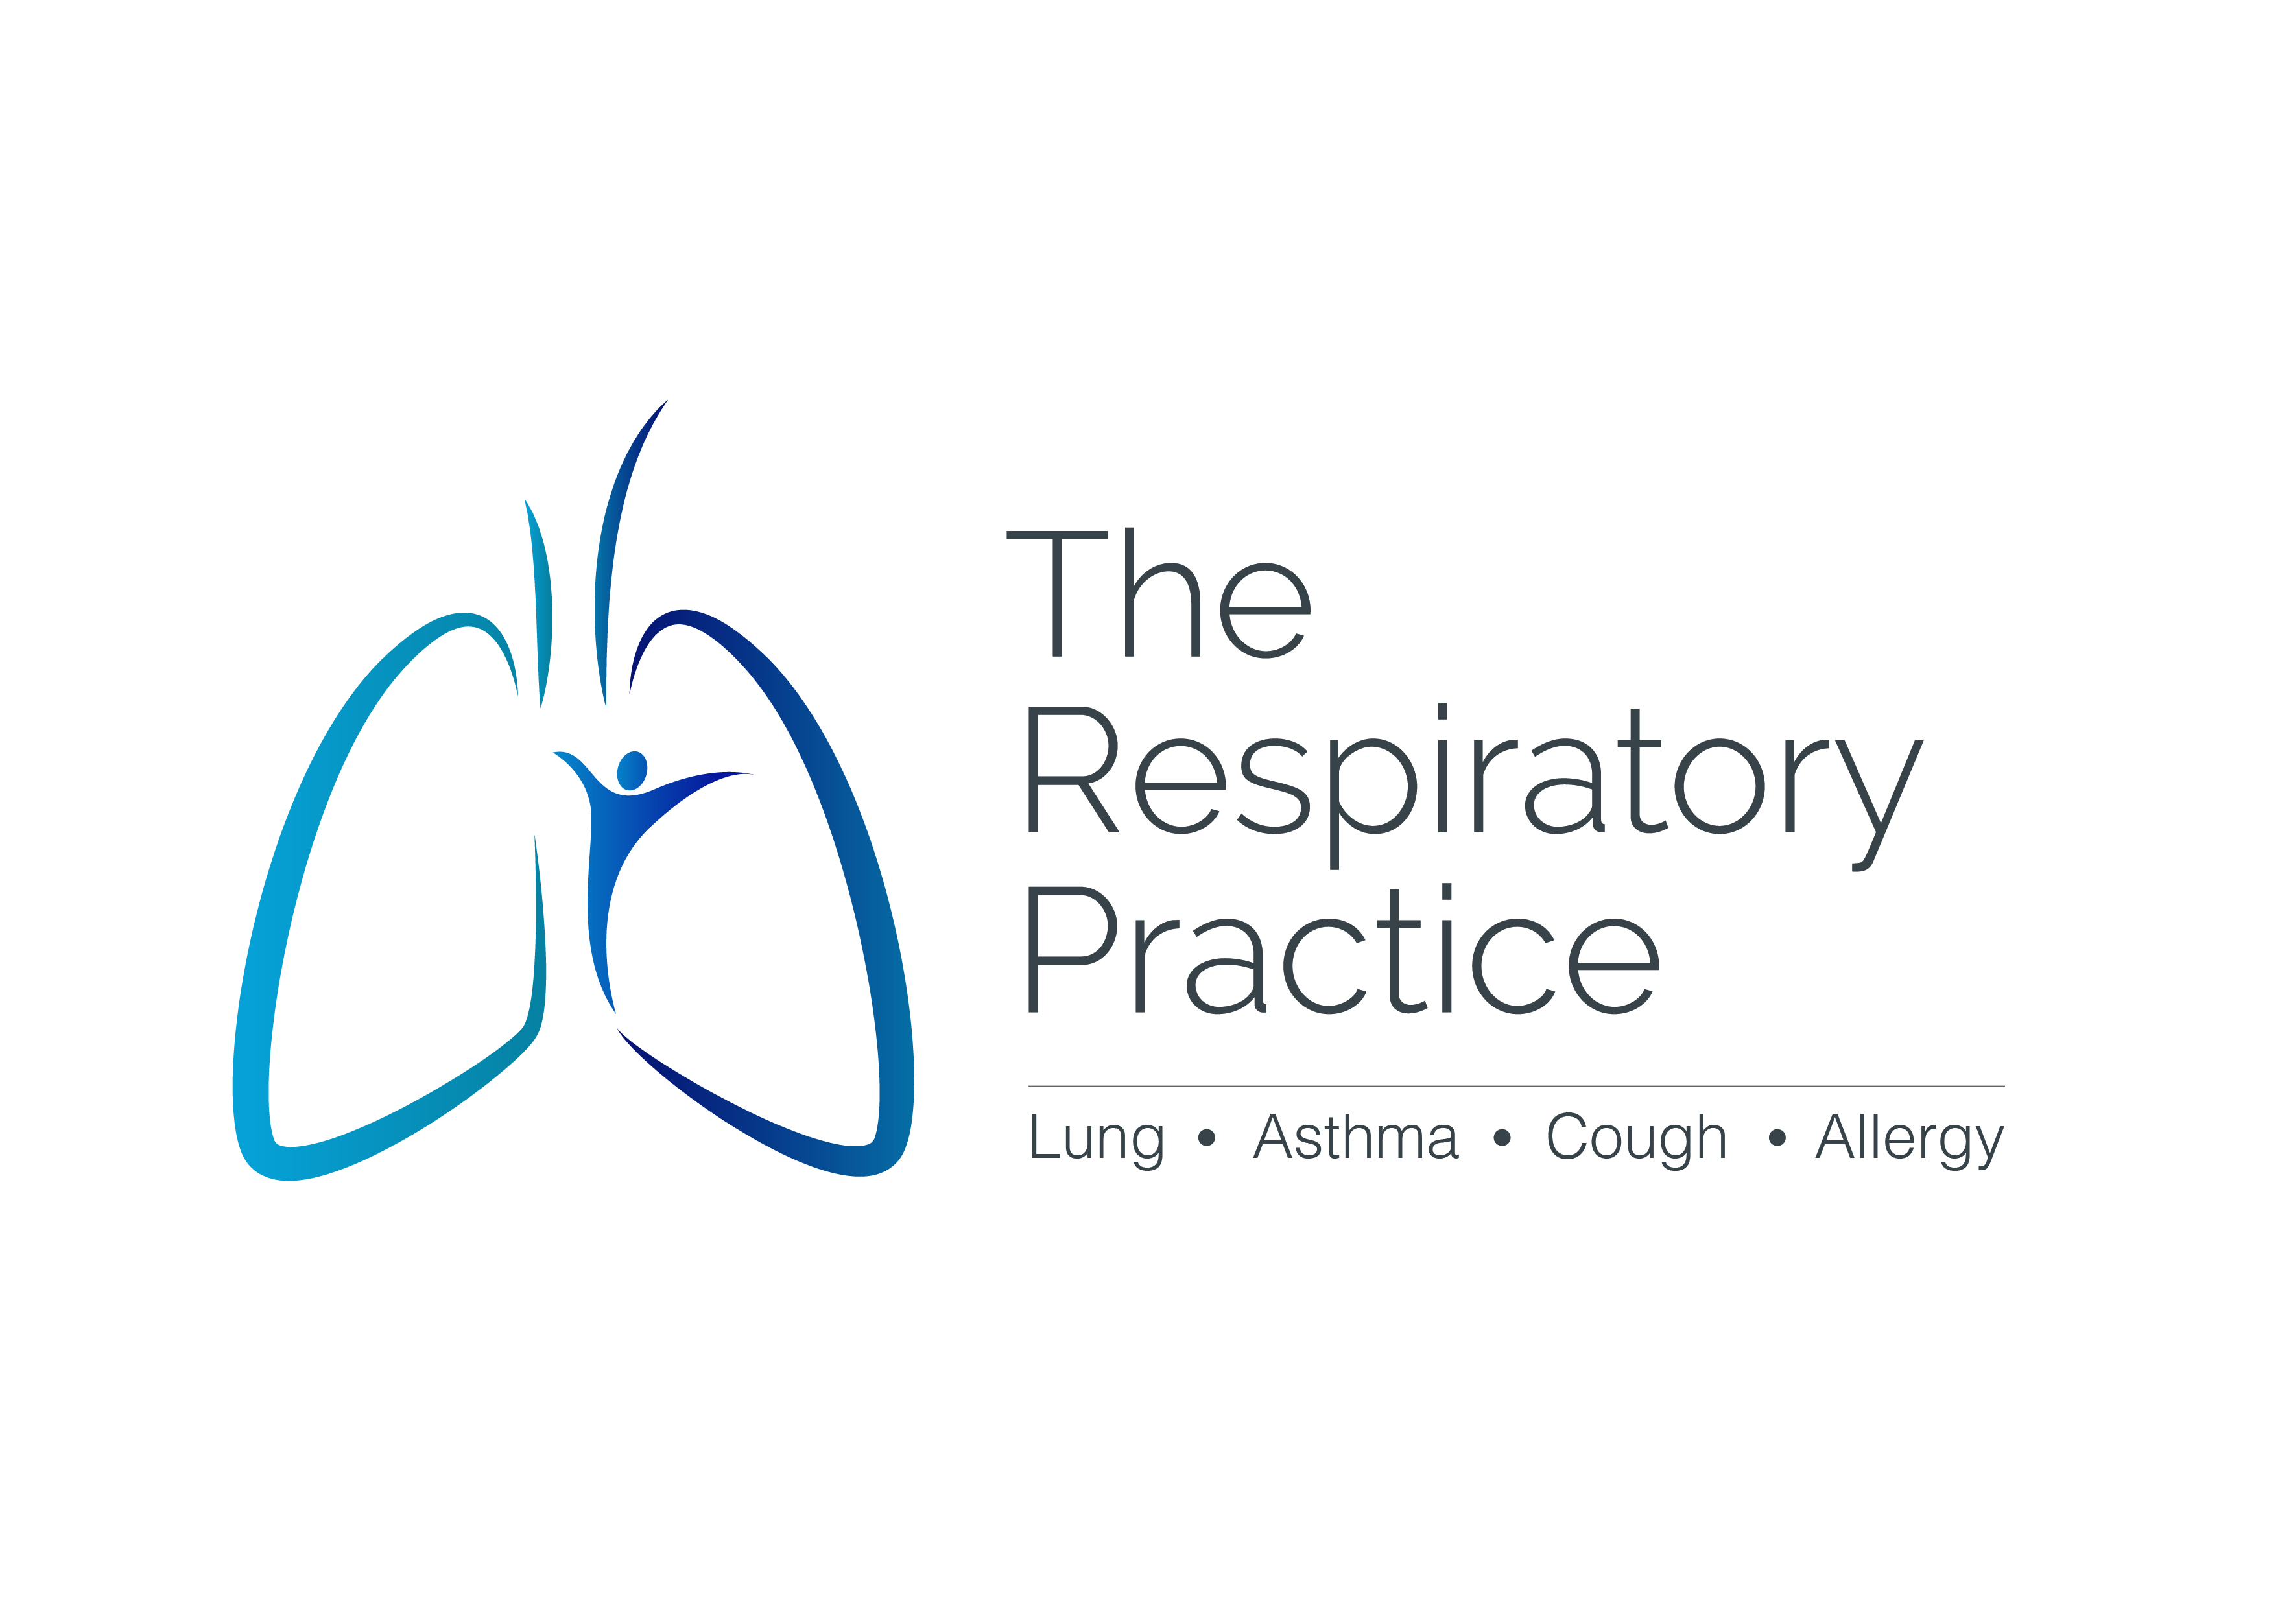 Dr Jim Teo Yeow Kwan specialises in Respiratory Medicine